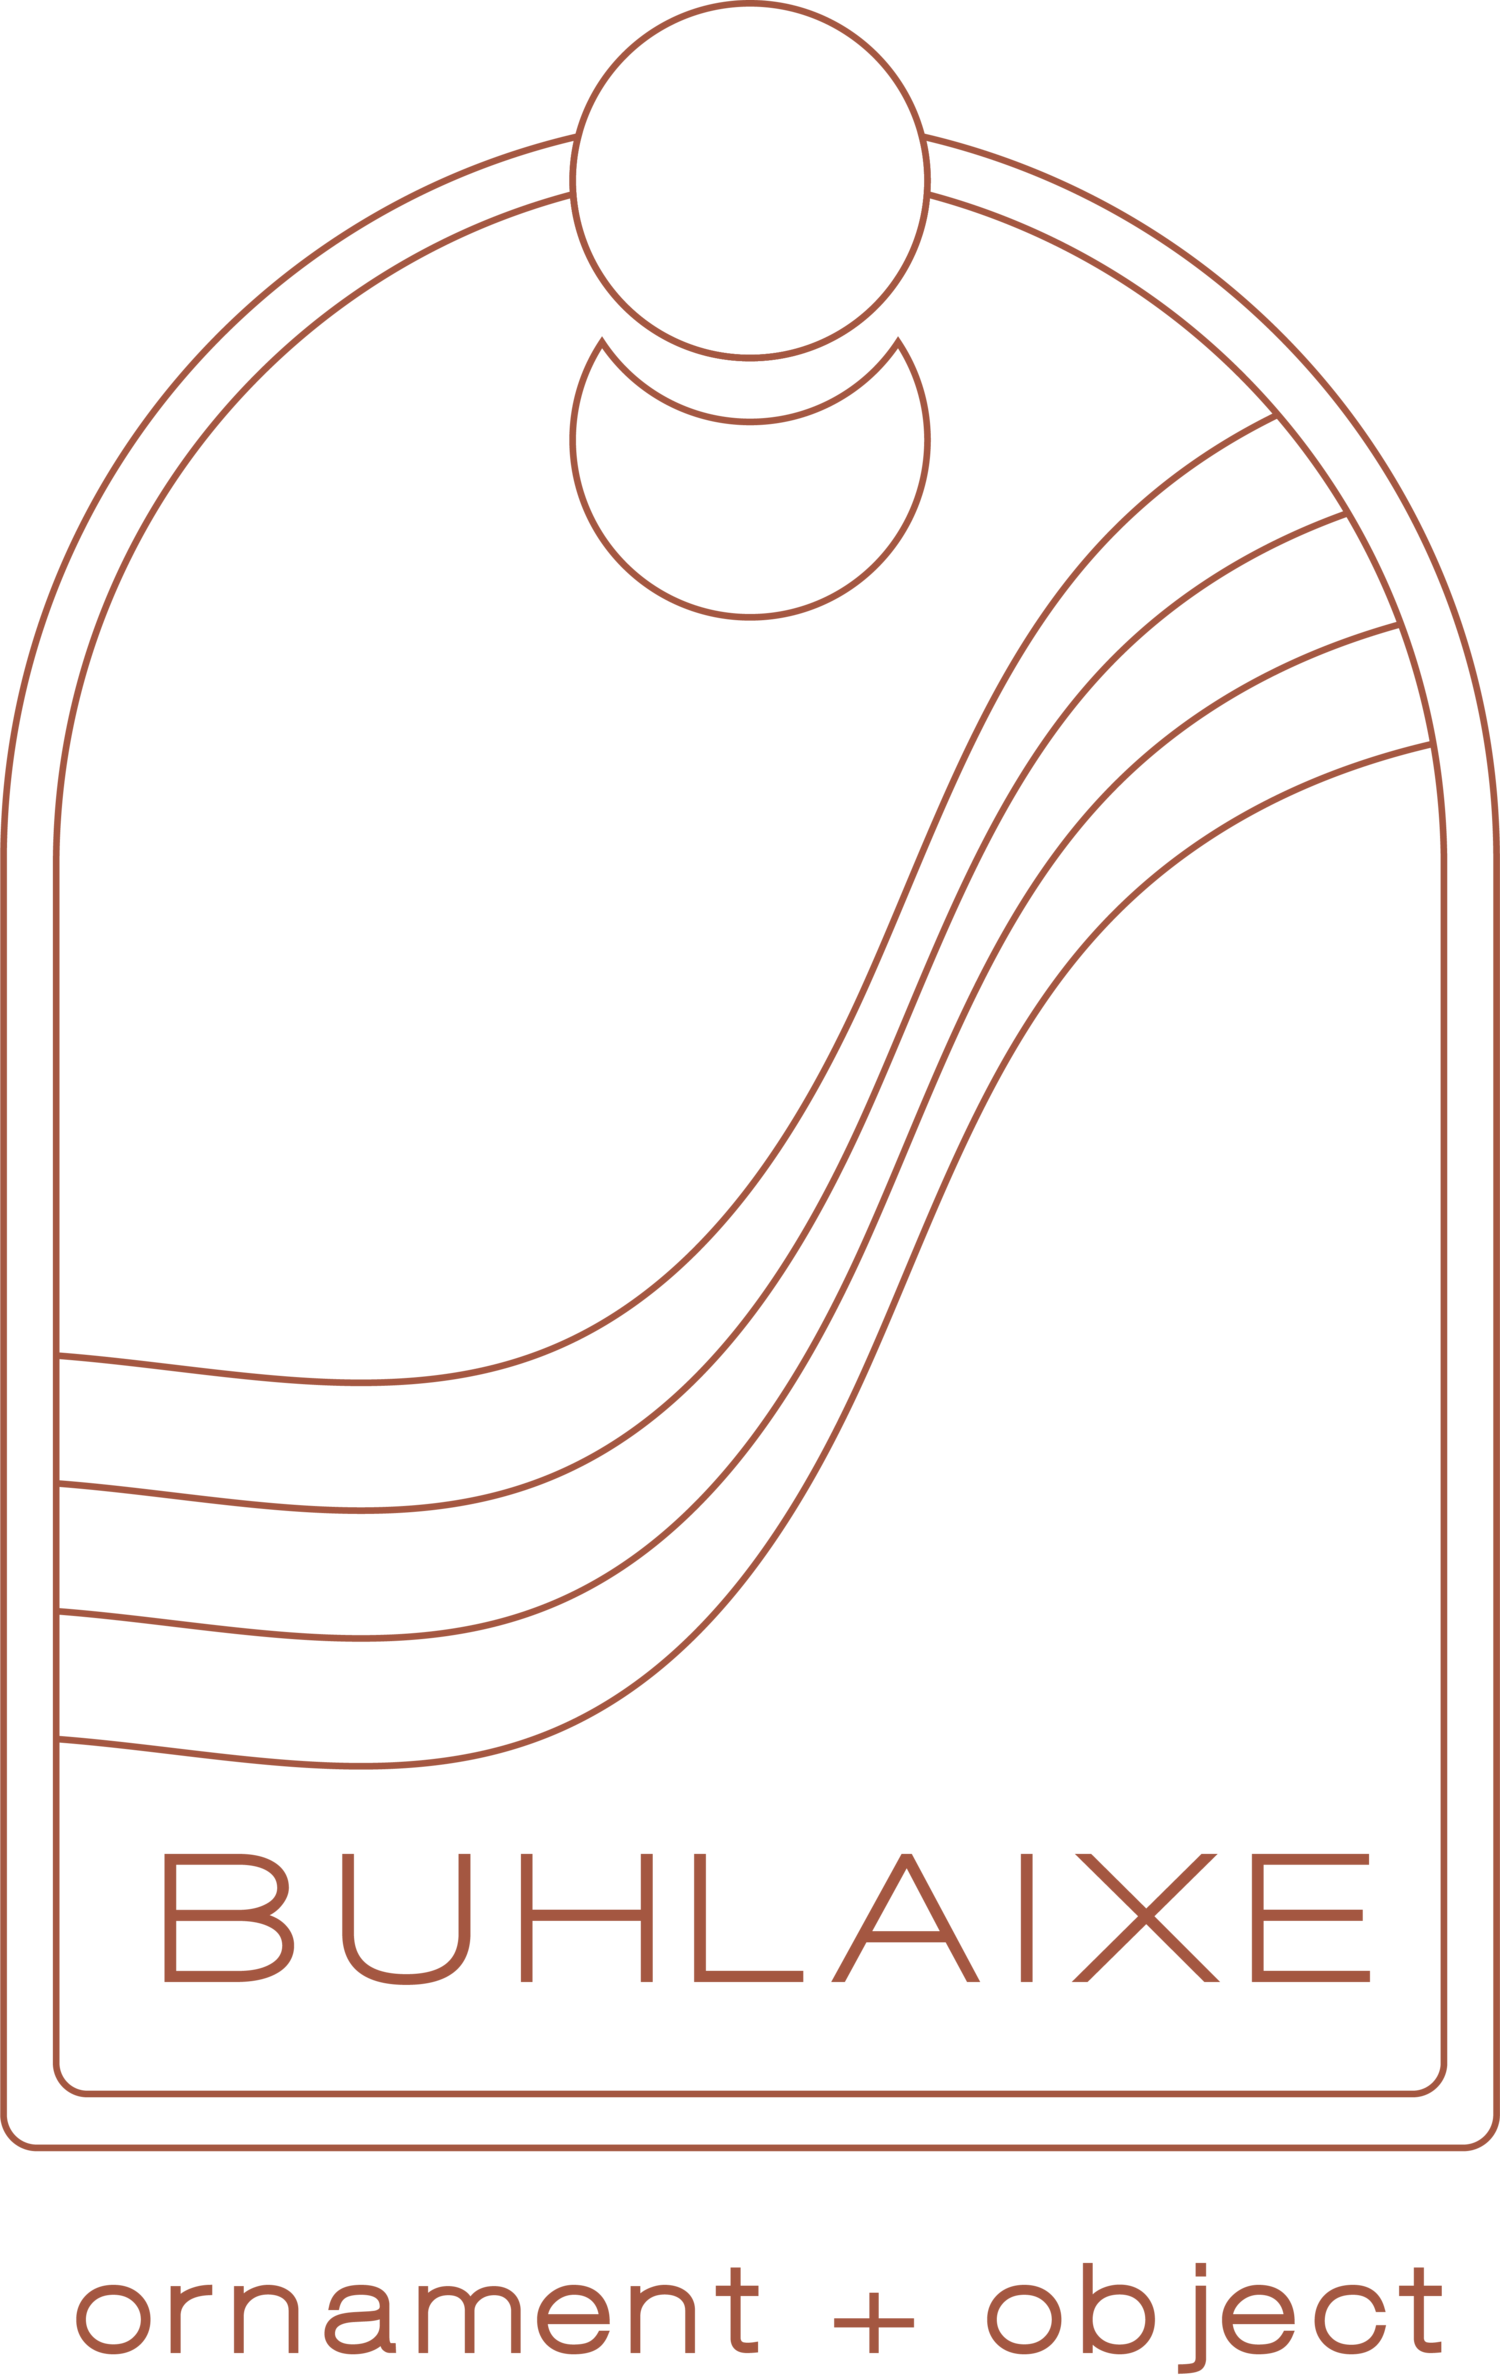 BUHLAIXE ornament + object